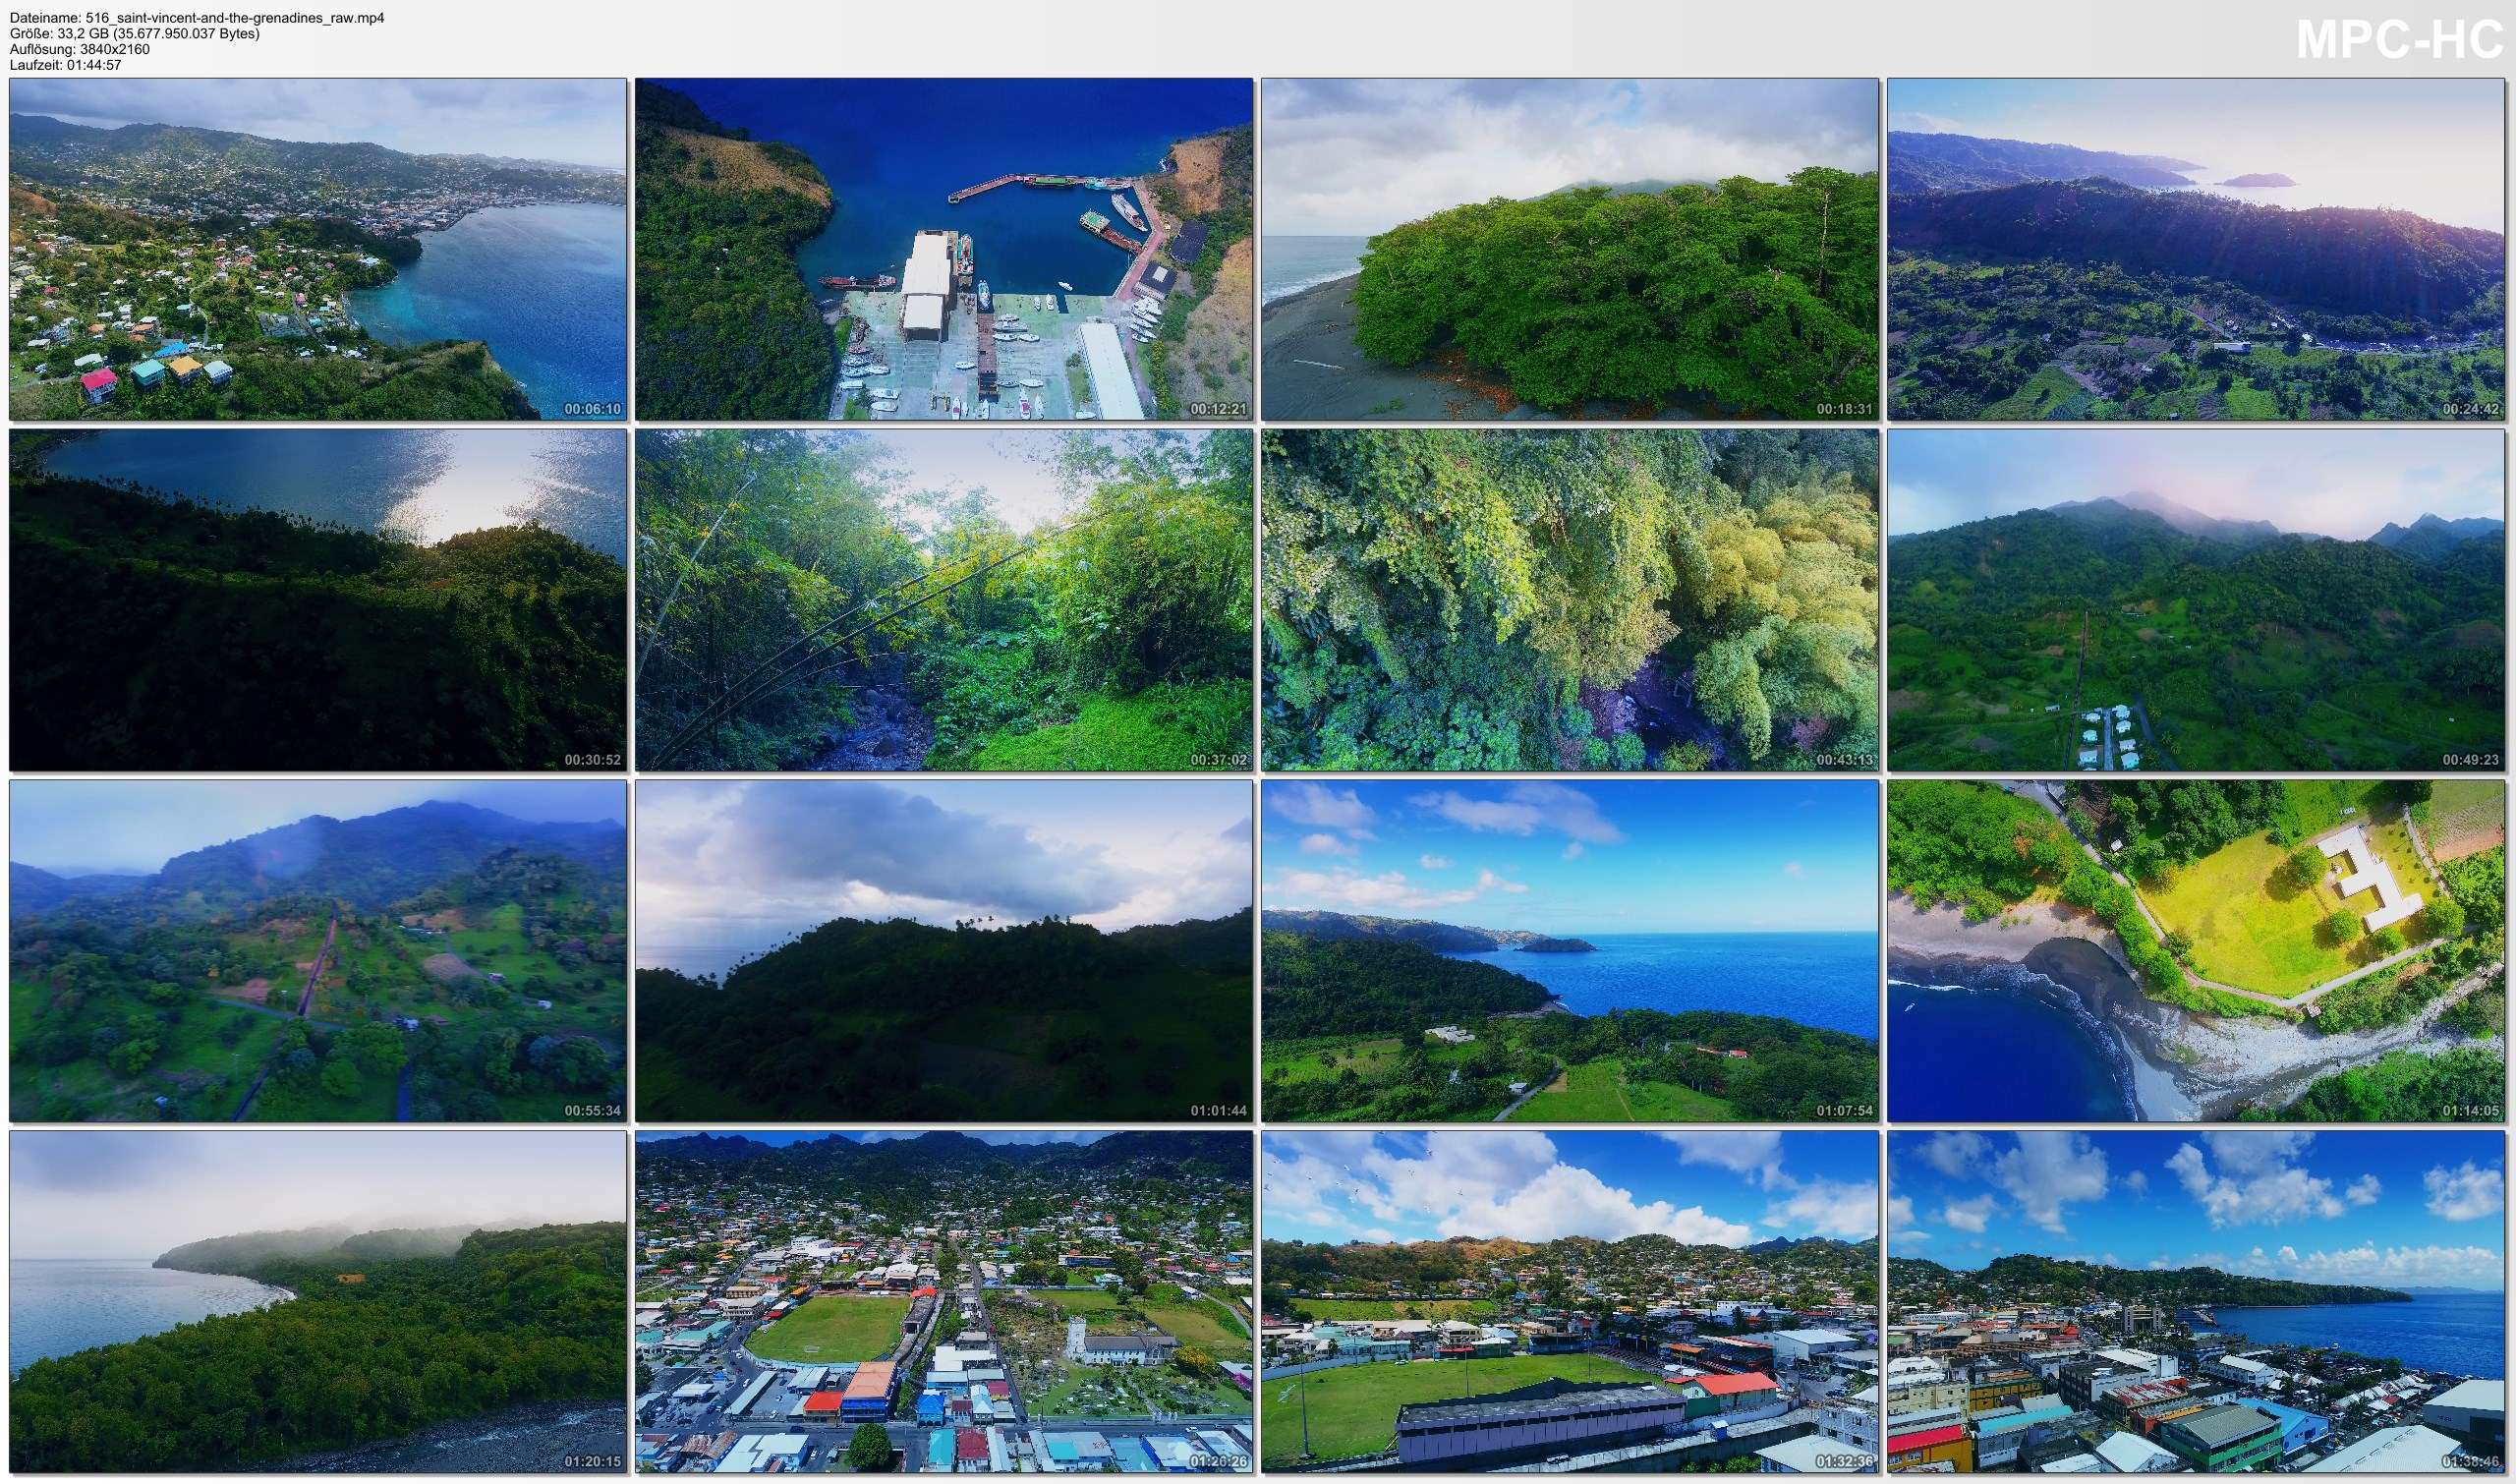 Drone Pictures from Video 【4K】Drone RAW Footage | This is SAINT VINCENT AND THE GRENADINES 2020 | UltraHD Stock Video